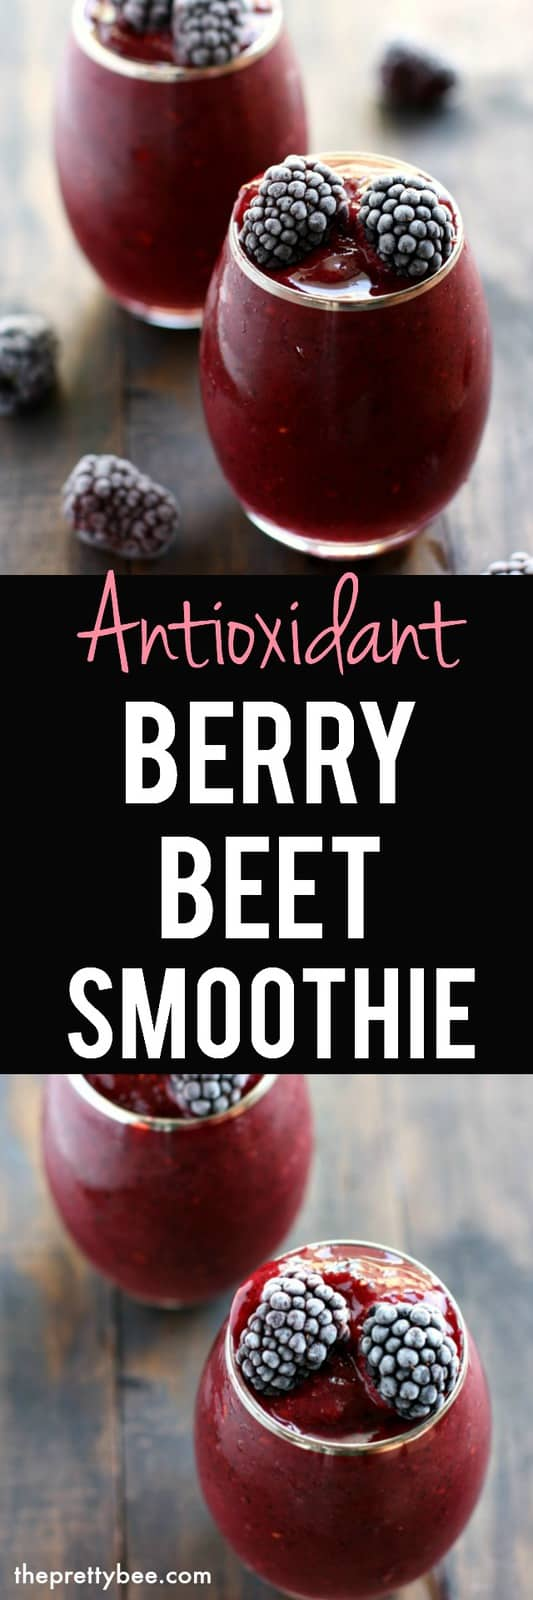 A healthy berry beet smoothie that's delicious and loaded with antioxidants, too!